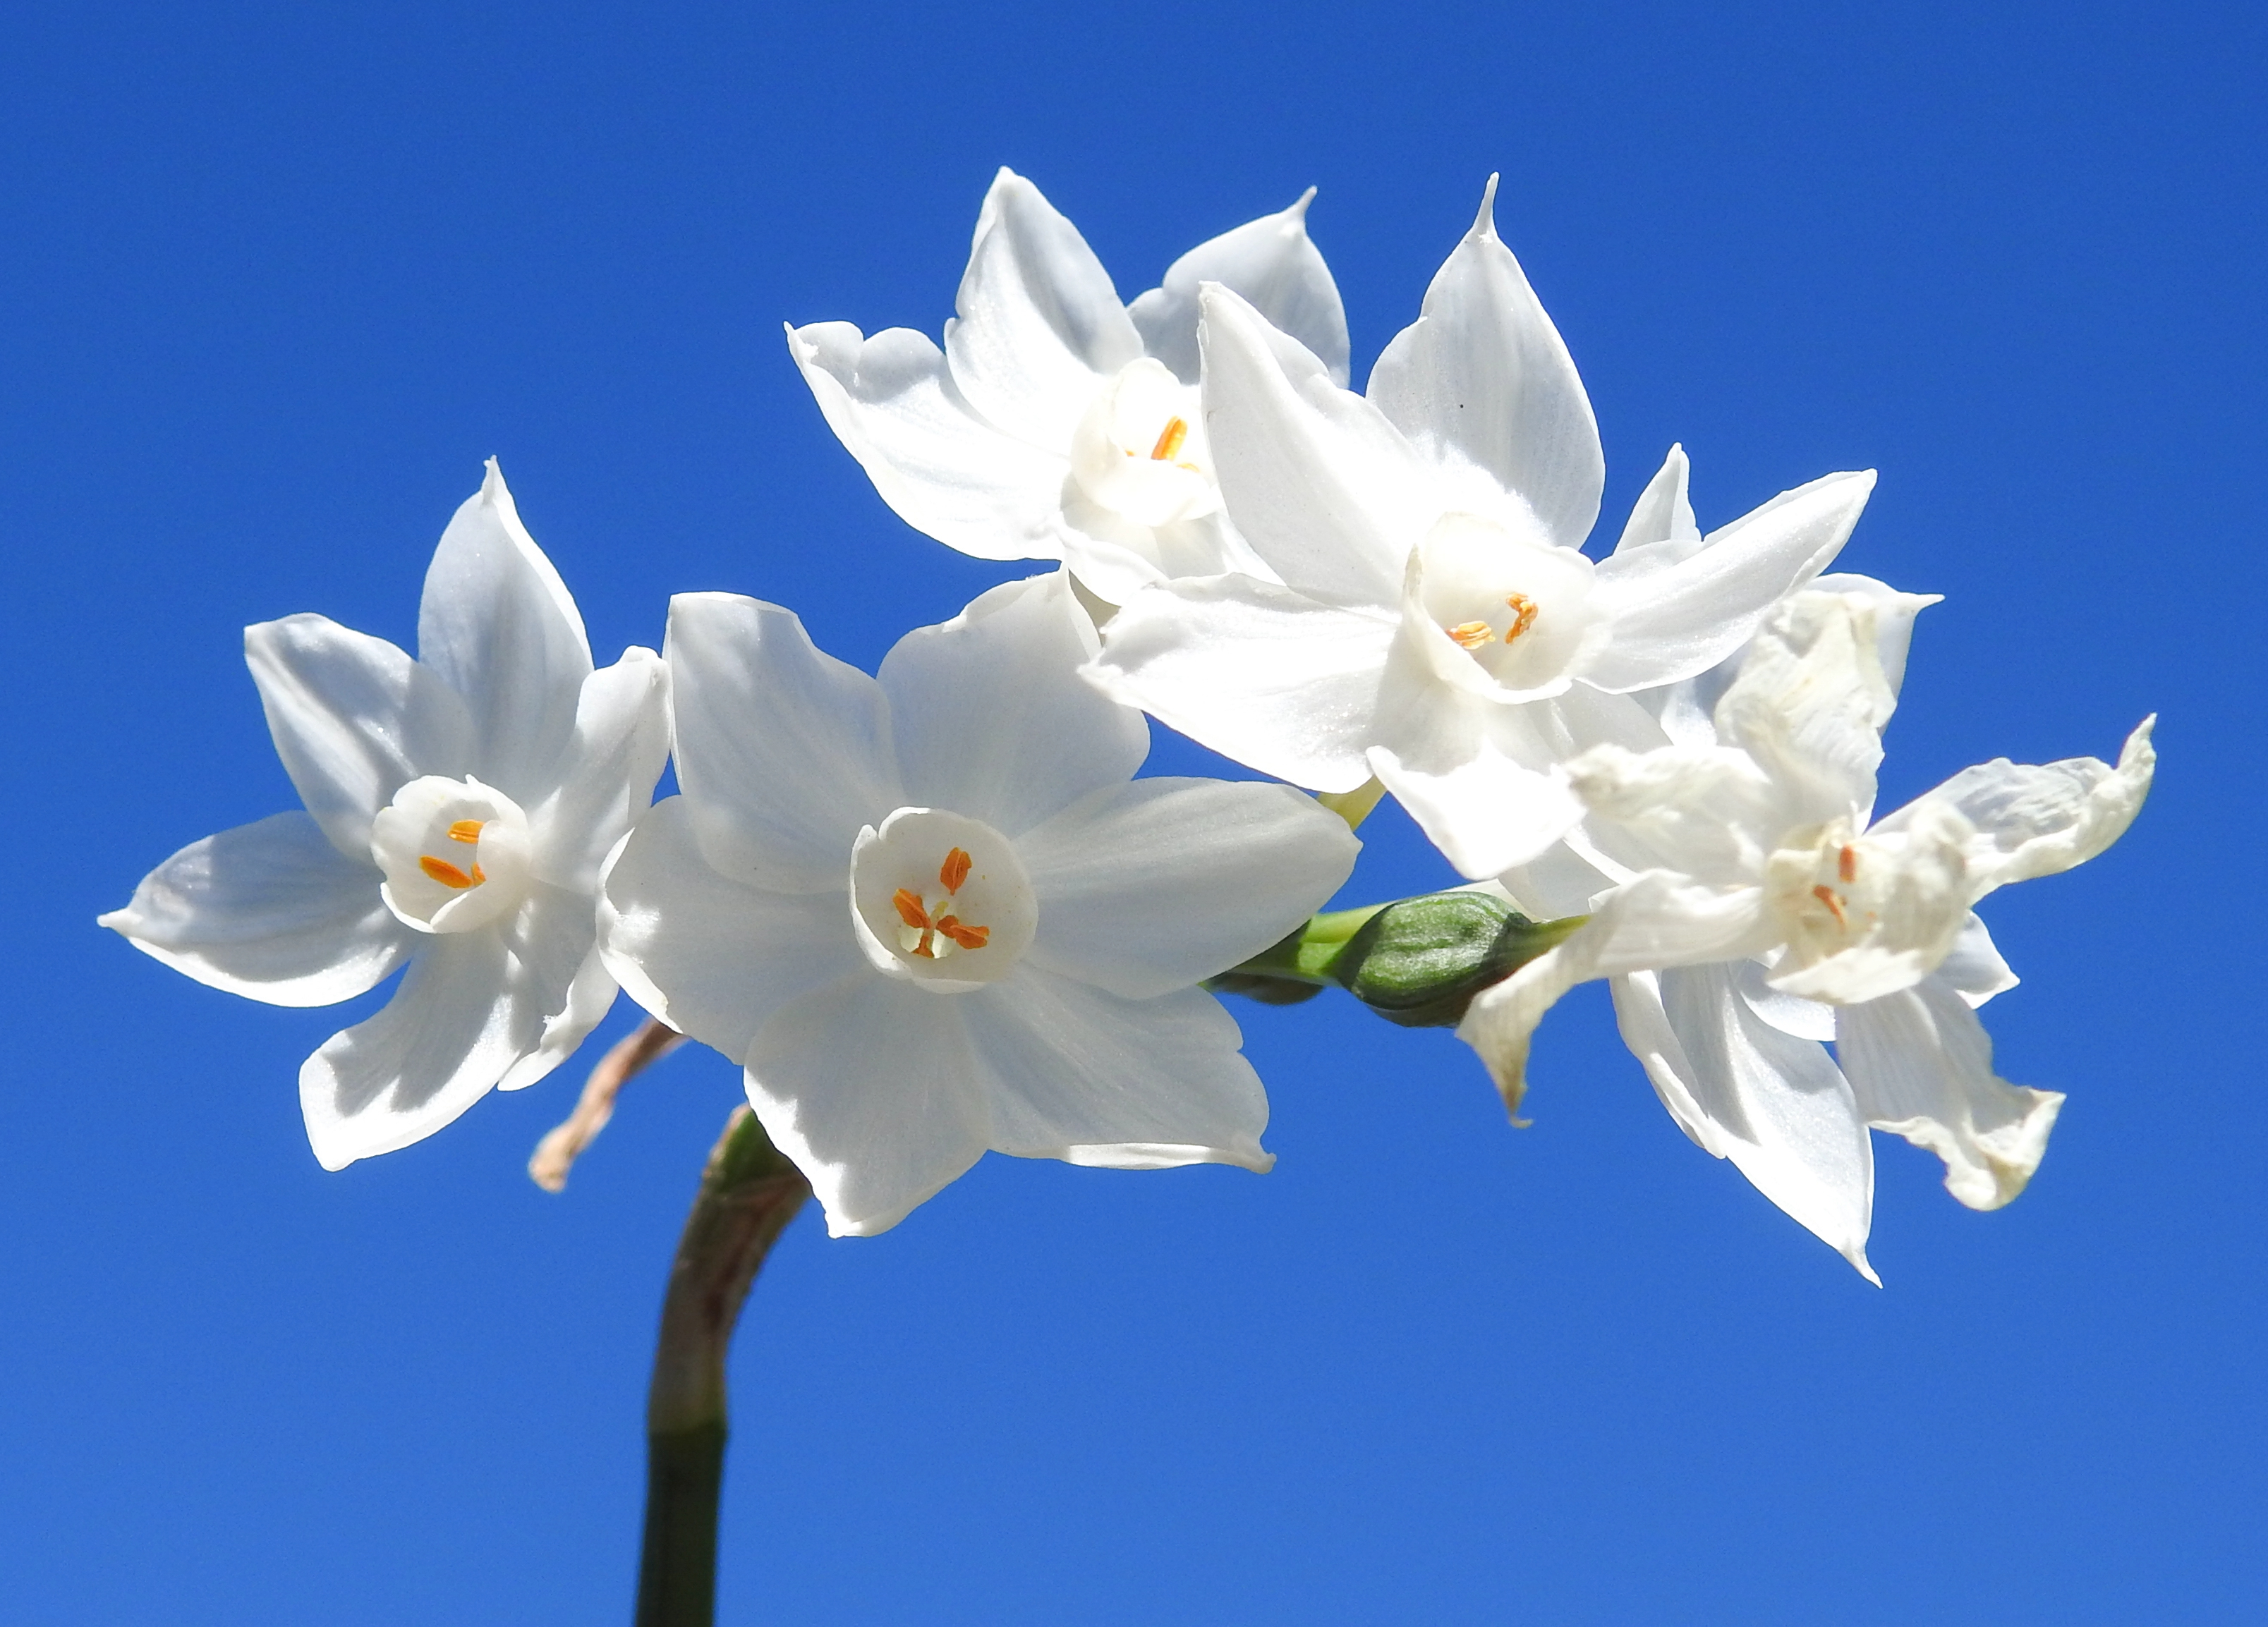 How to Make a Paperwhite Narcissus Bloom Again | Home Guides | SF Gate